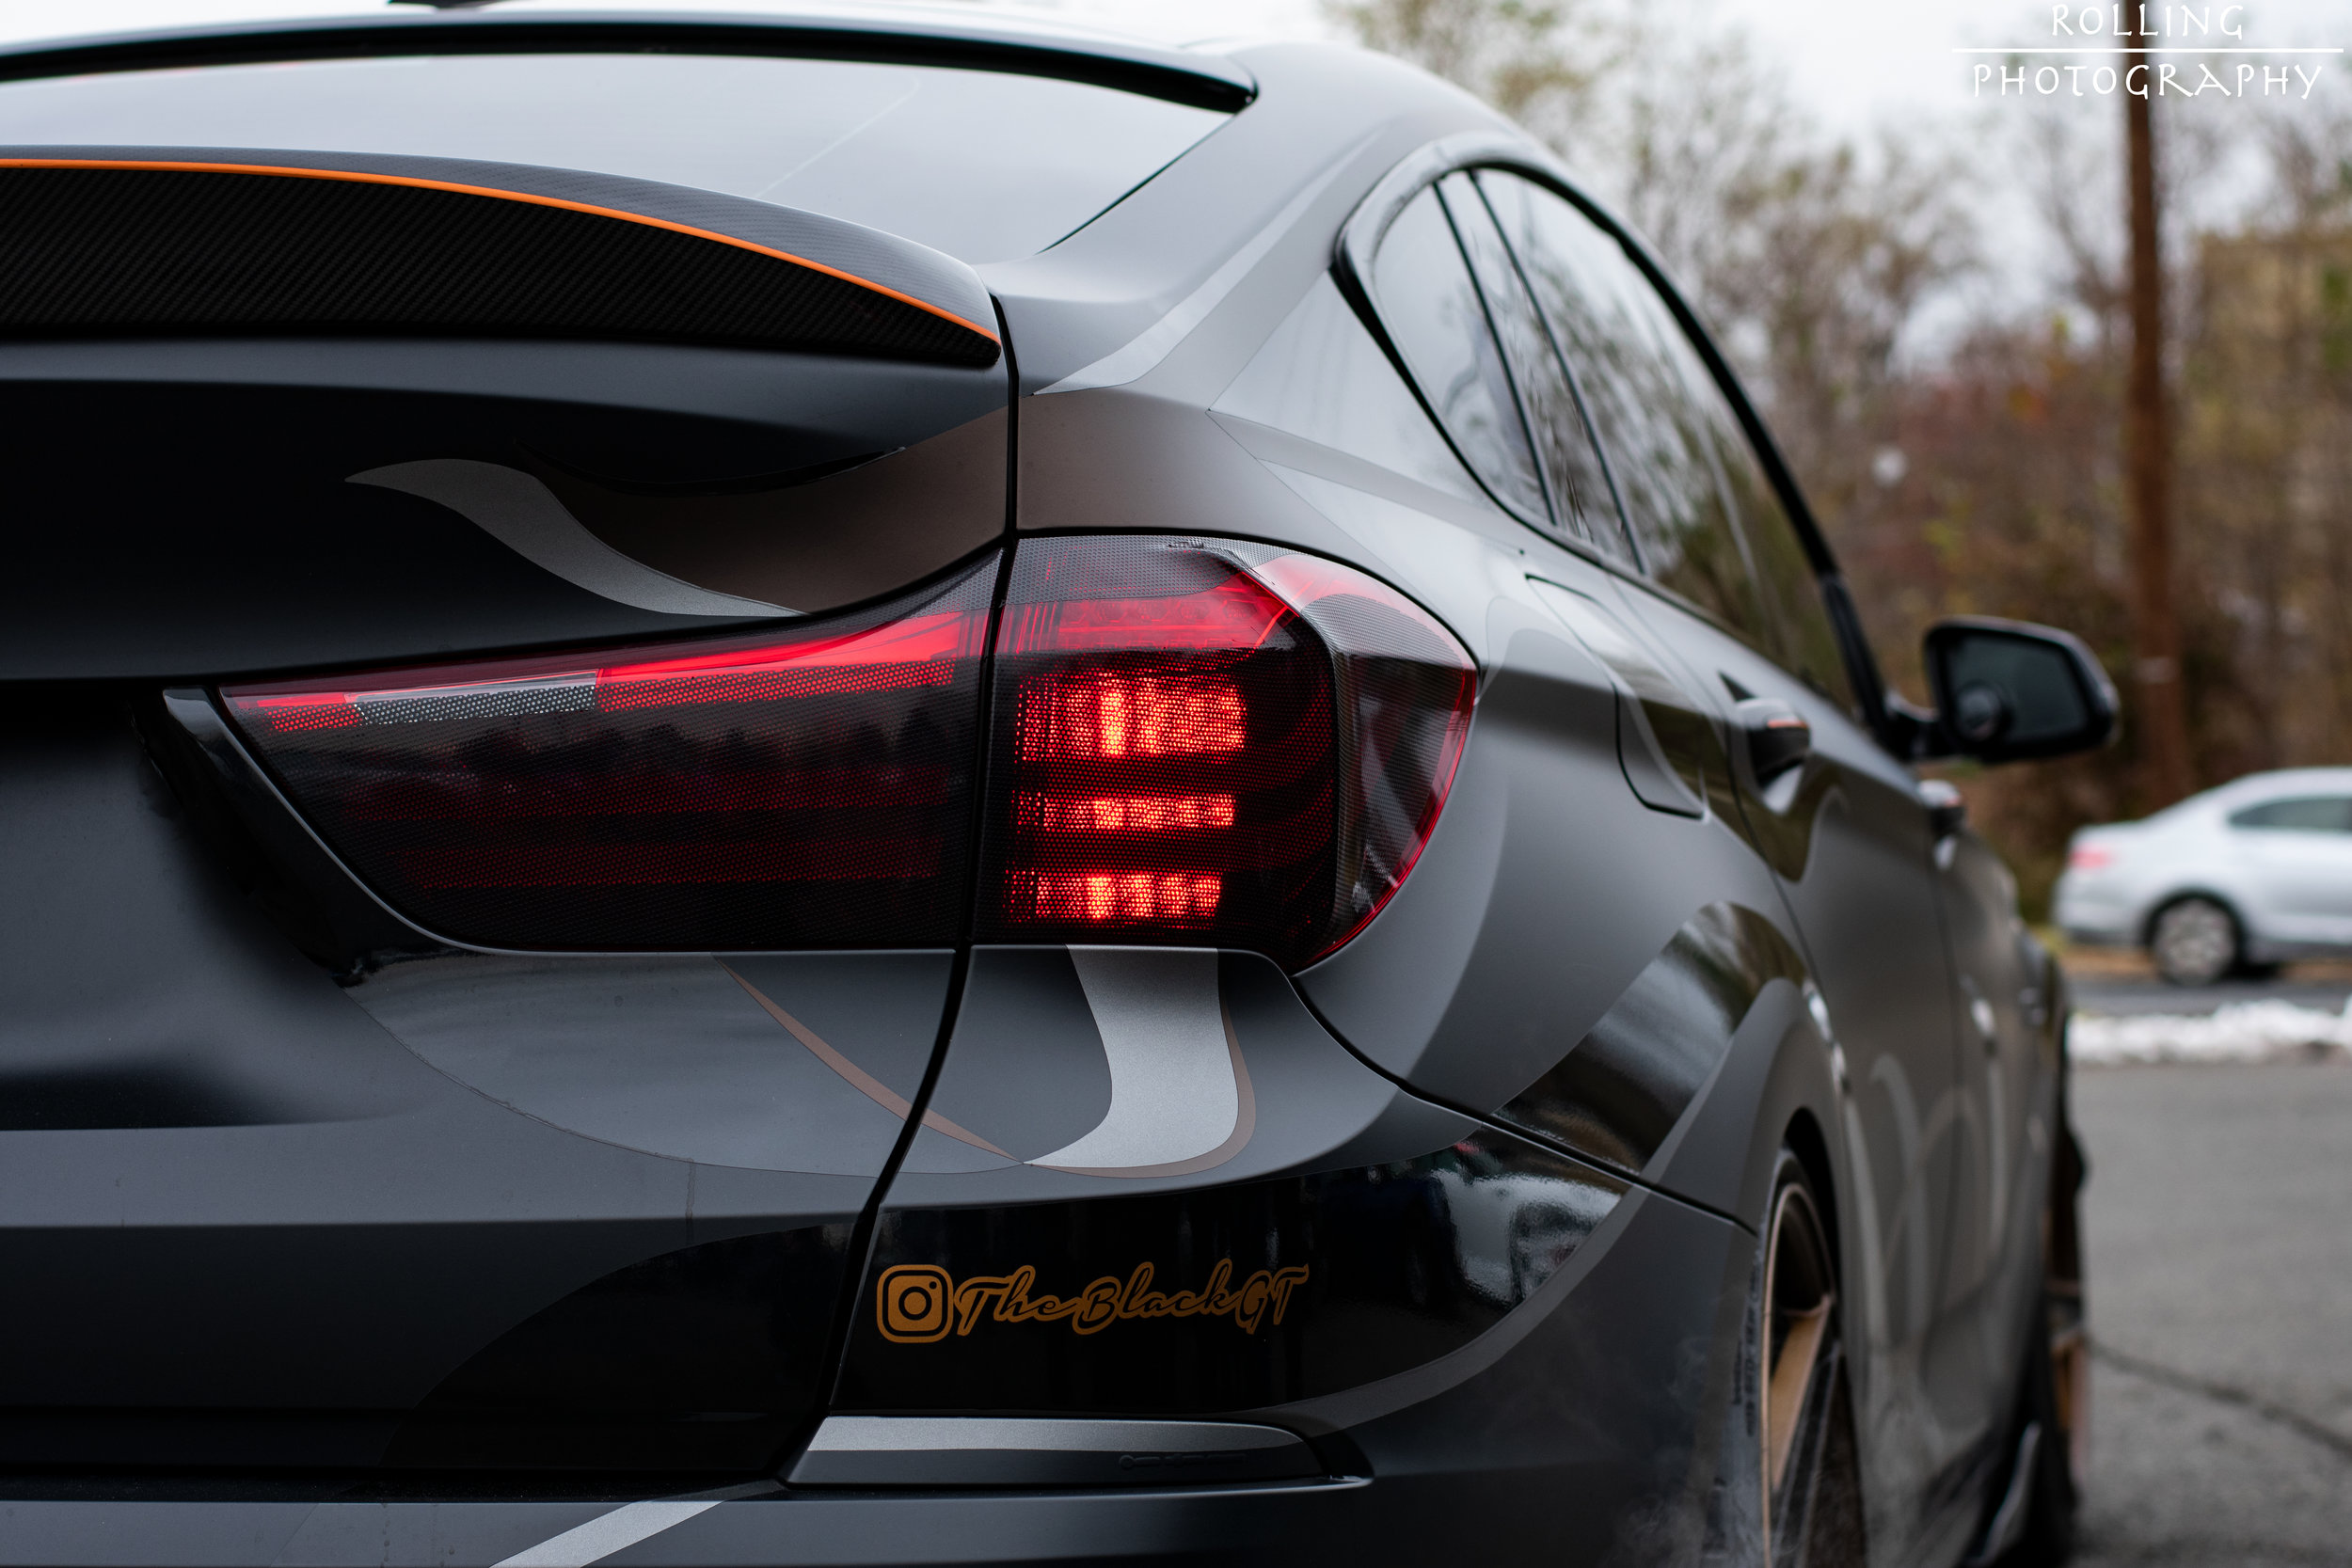 TheBlackGT Tail Light Right Rear Angle.jpg